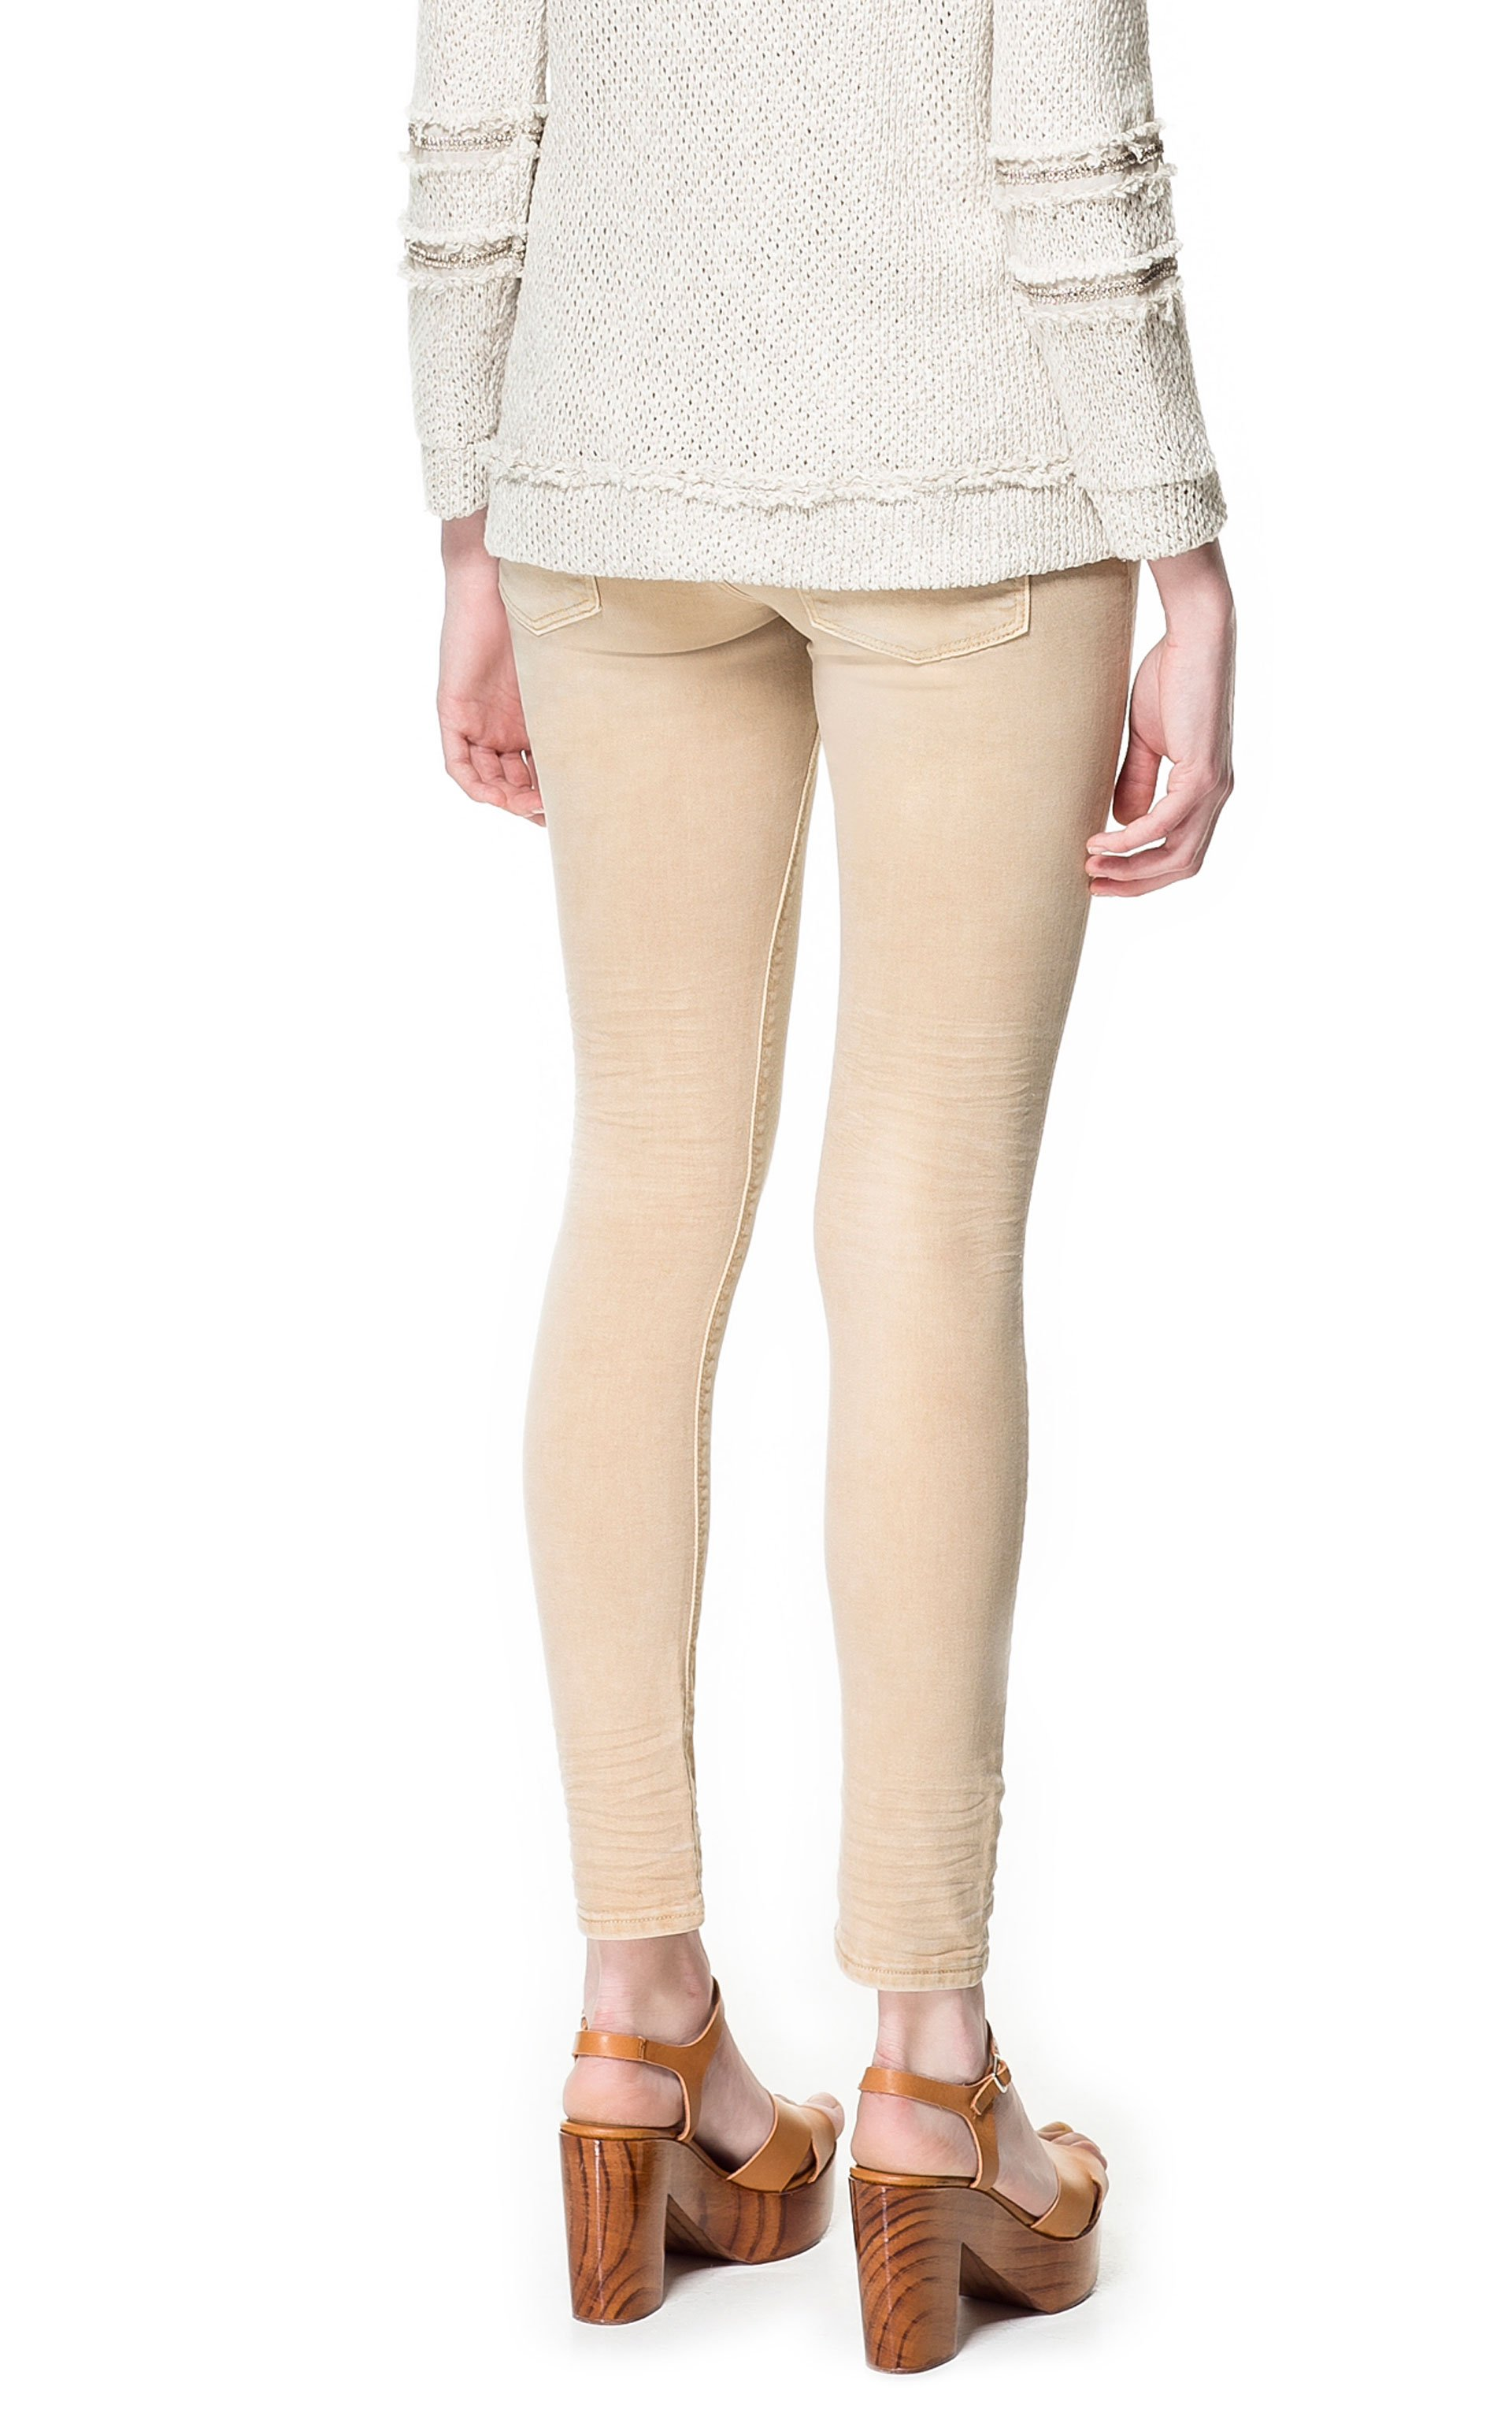 Zara Colored Jeans In Beige (cream) | Lyst